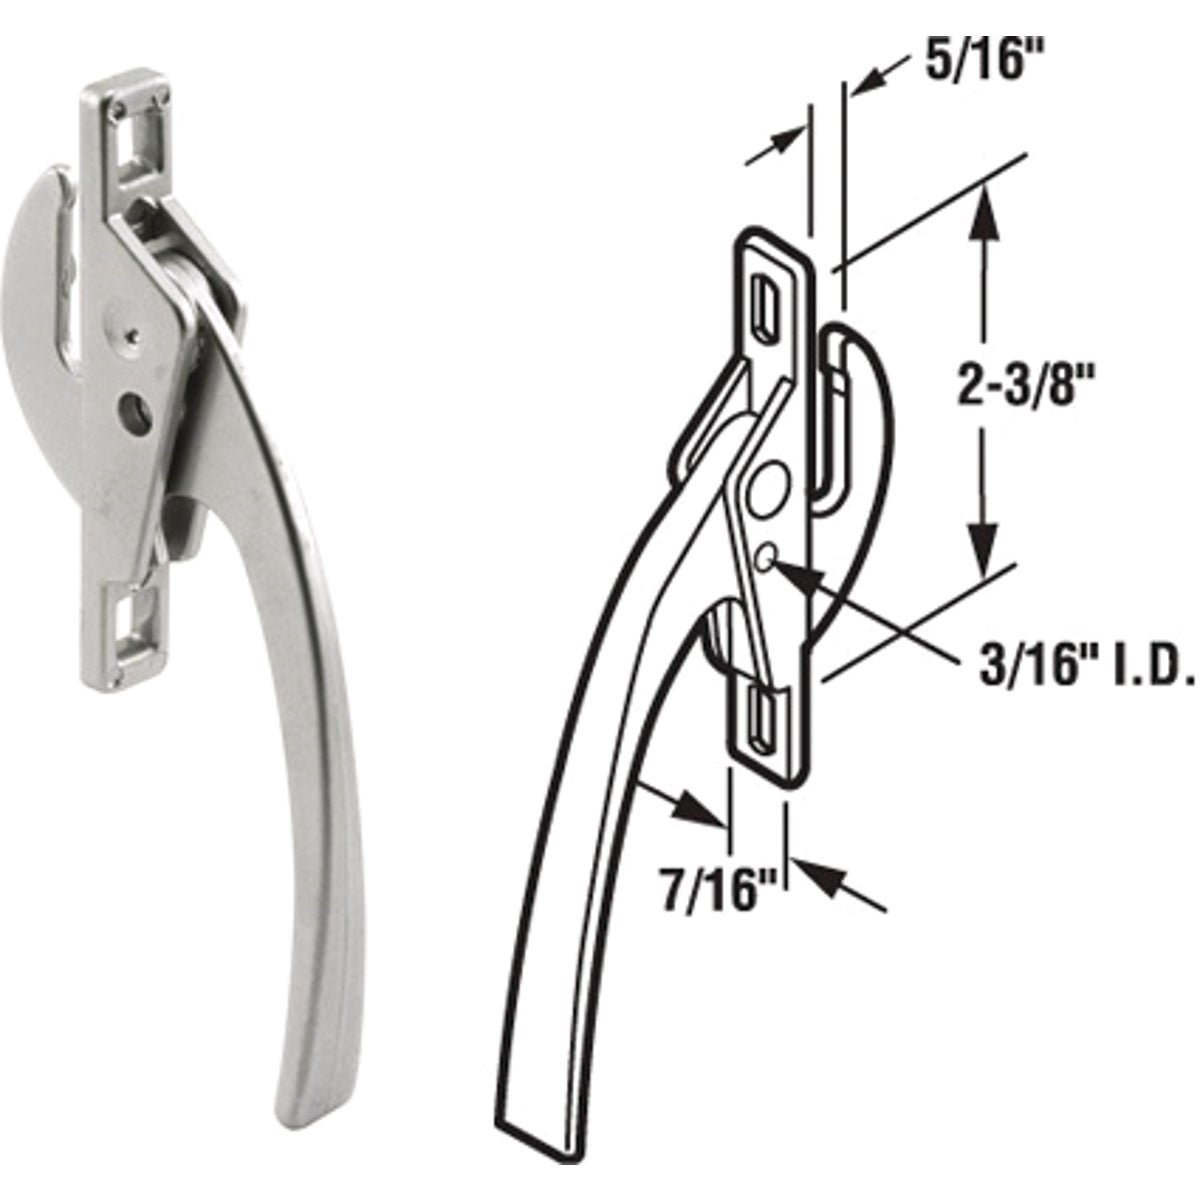 Slide-Co Casement Window Locking Handle